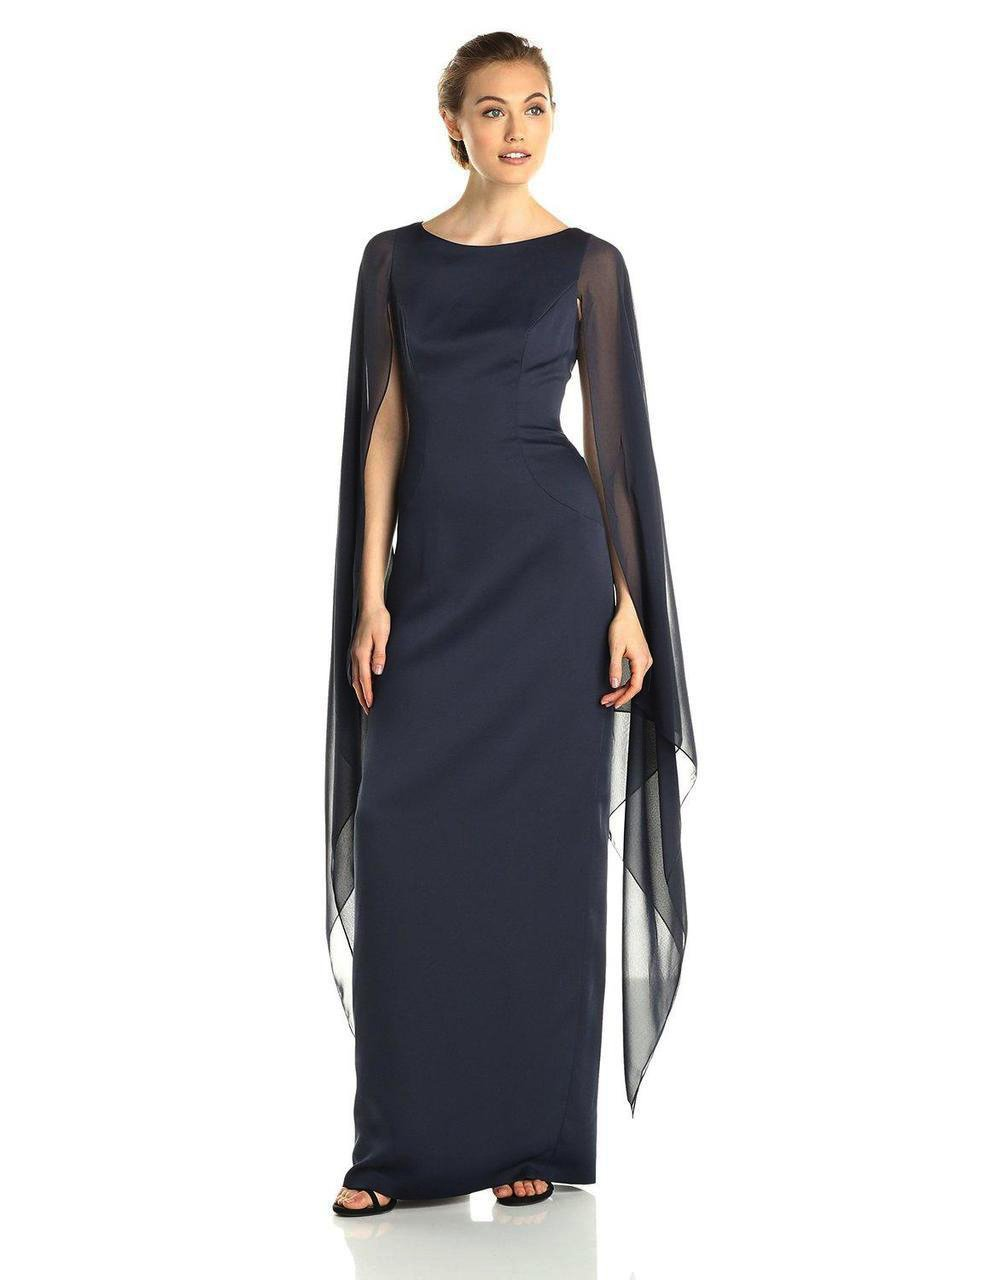 Adrianna Papell - 81917310 Fitted Bateau Dress with Cape in Black